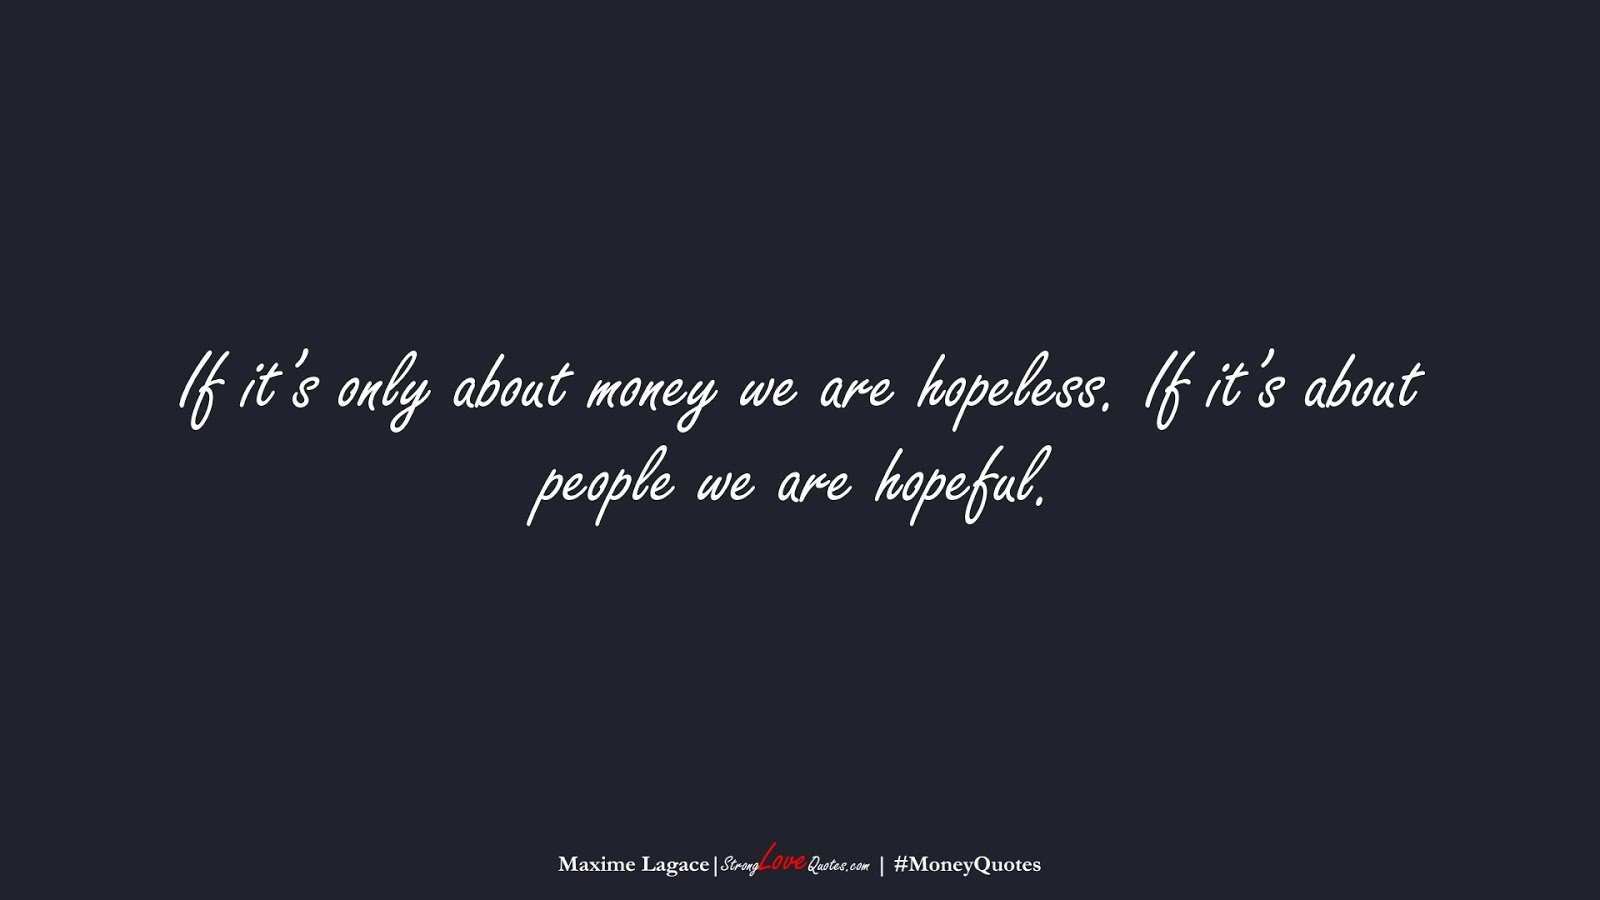 If it's only about money we are hopeless. If it's about people we are hopeful. (Maxime Lagace);  #MoneyQuotes